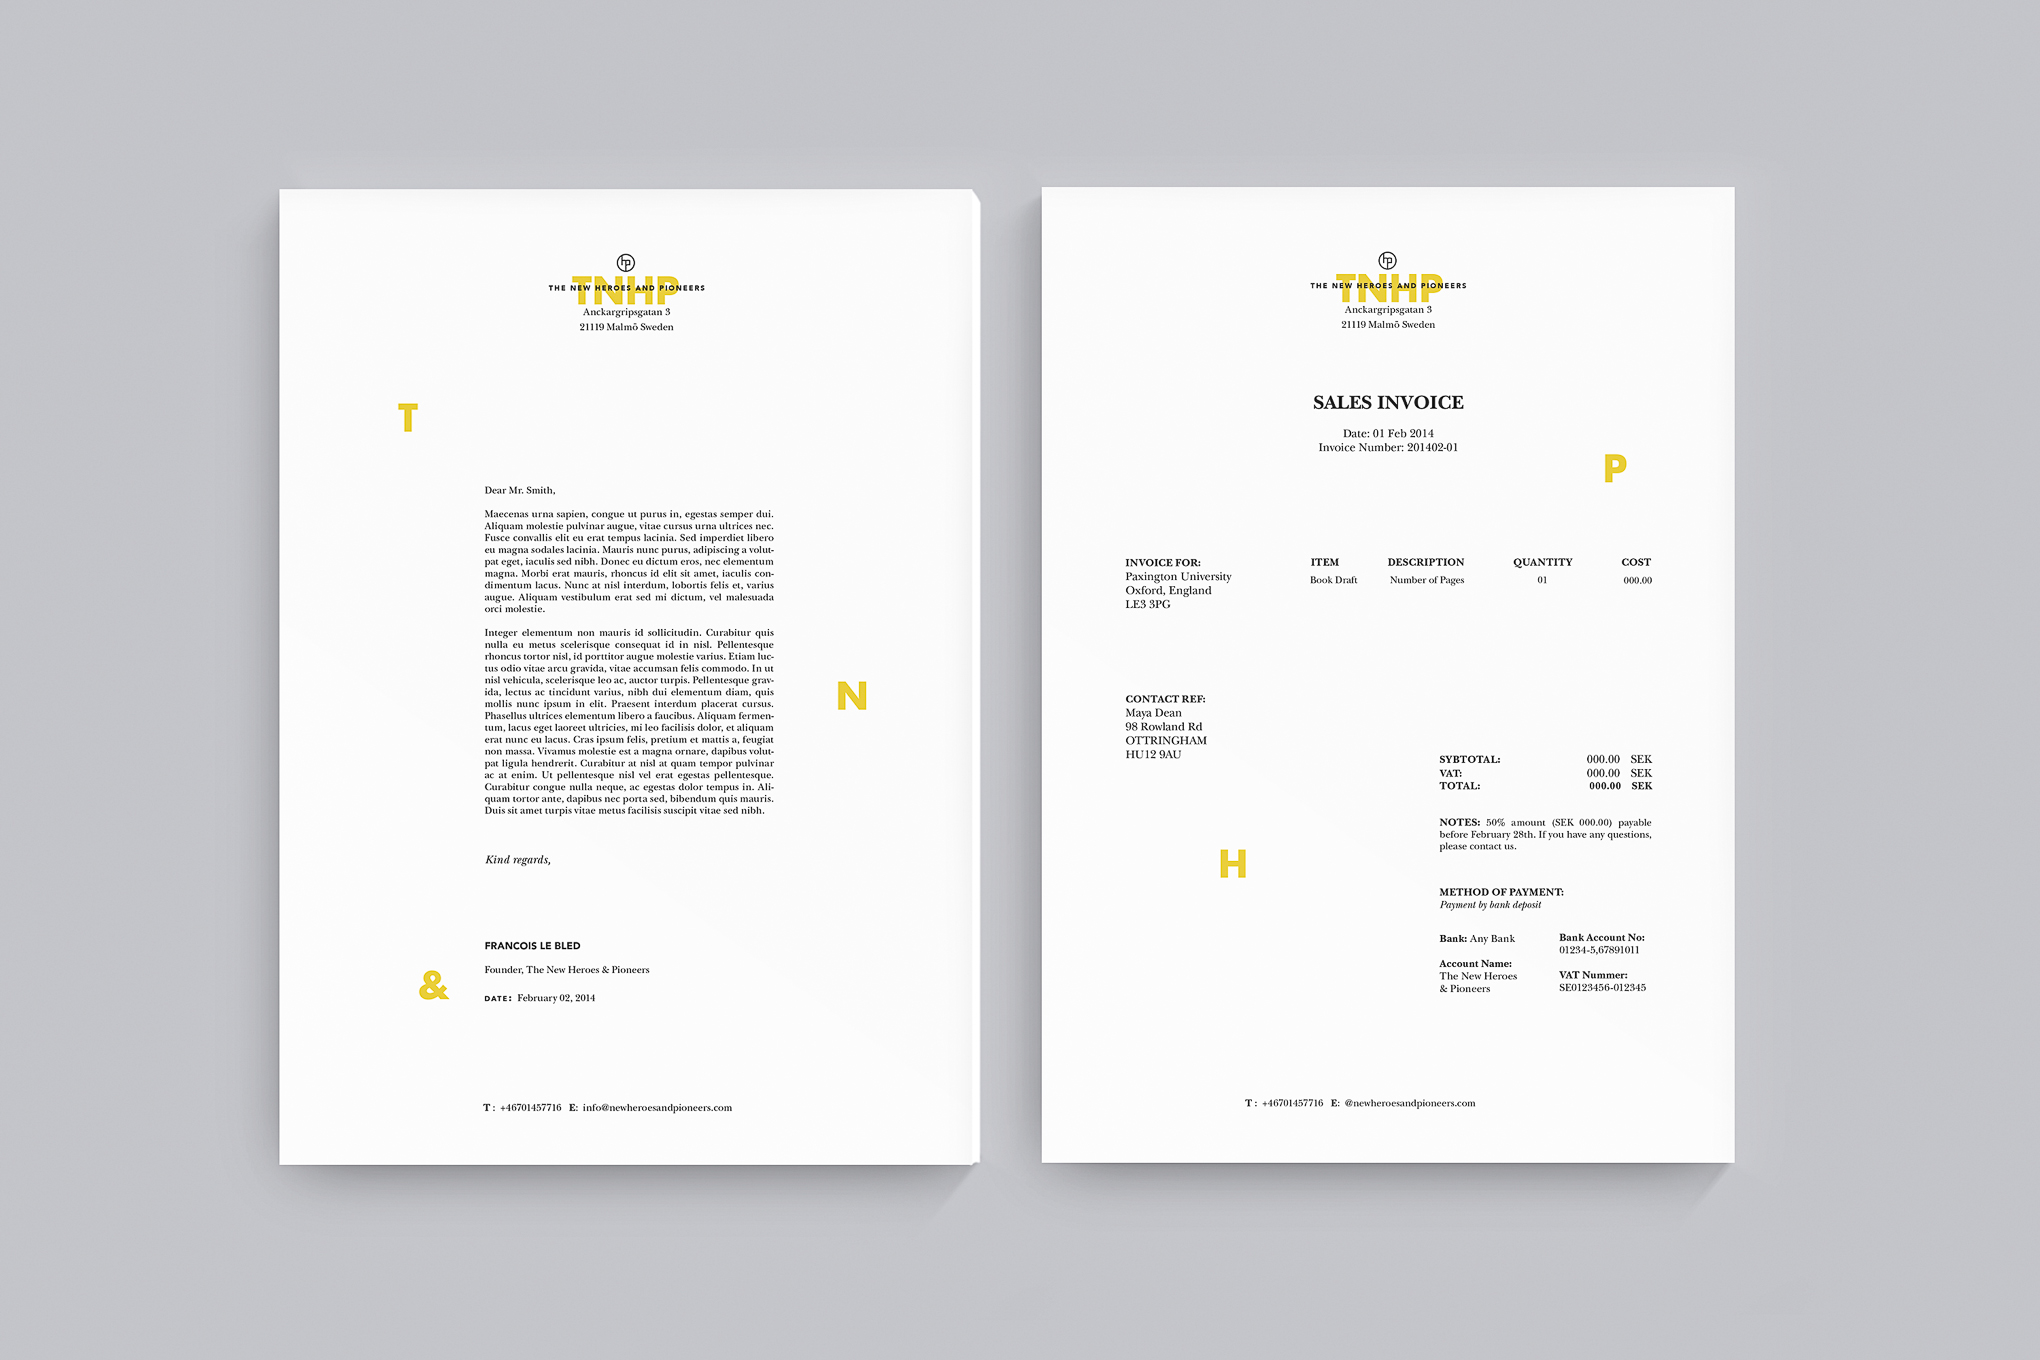 The New Heroes & Pioneers _ Letterhead and Invoice 13293214174.jpg